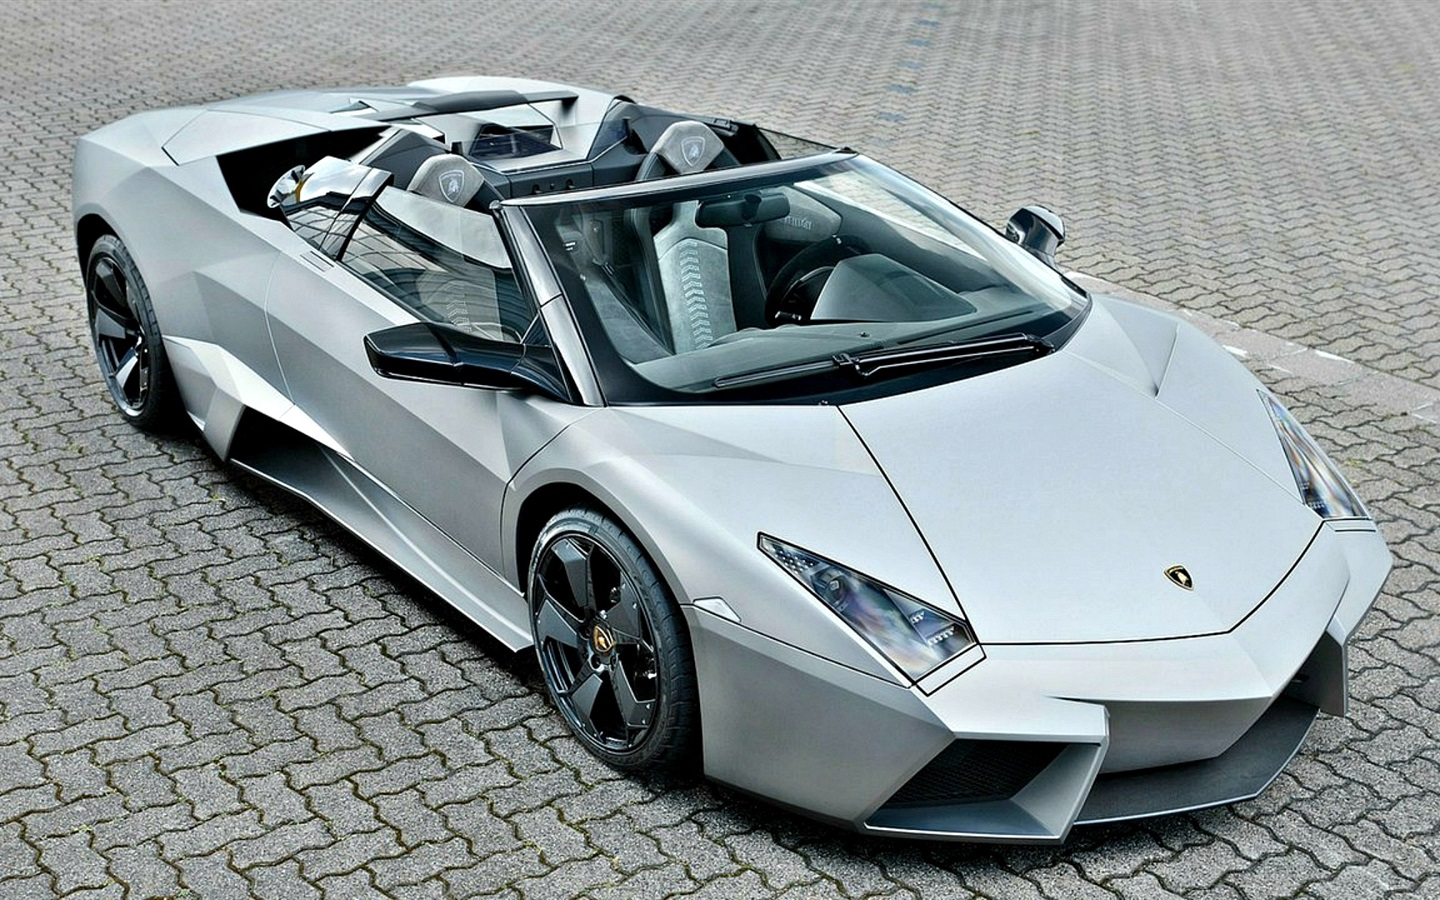 Lamborghini Cars 2018 2017 Reviews Photos Video Specs